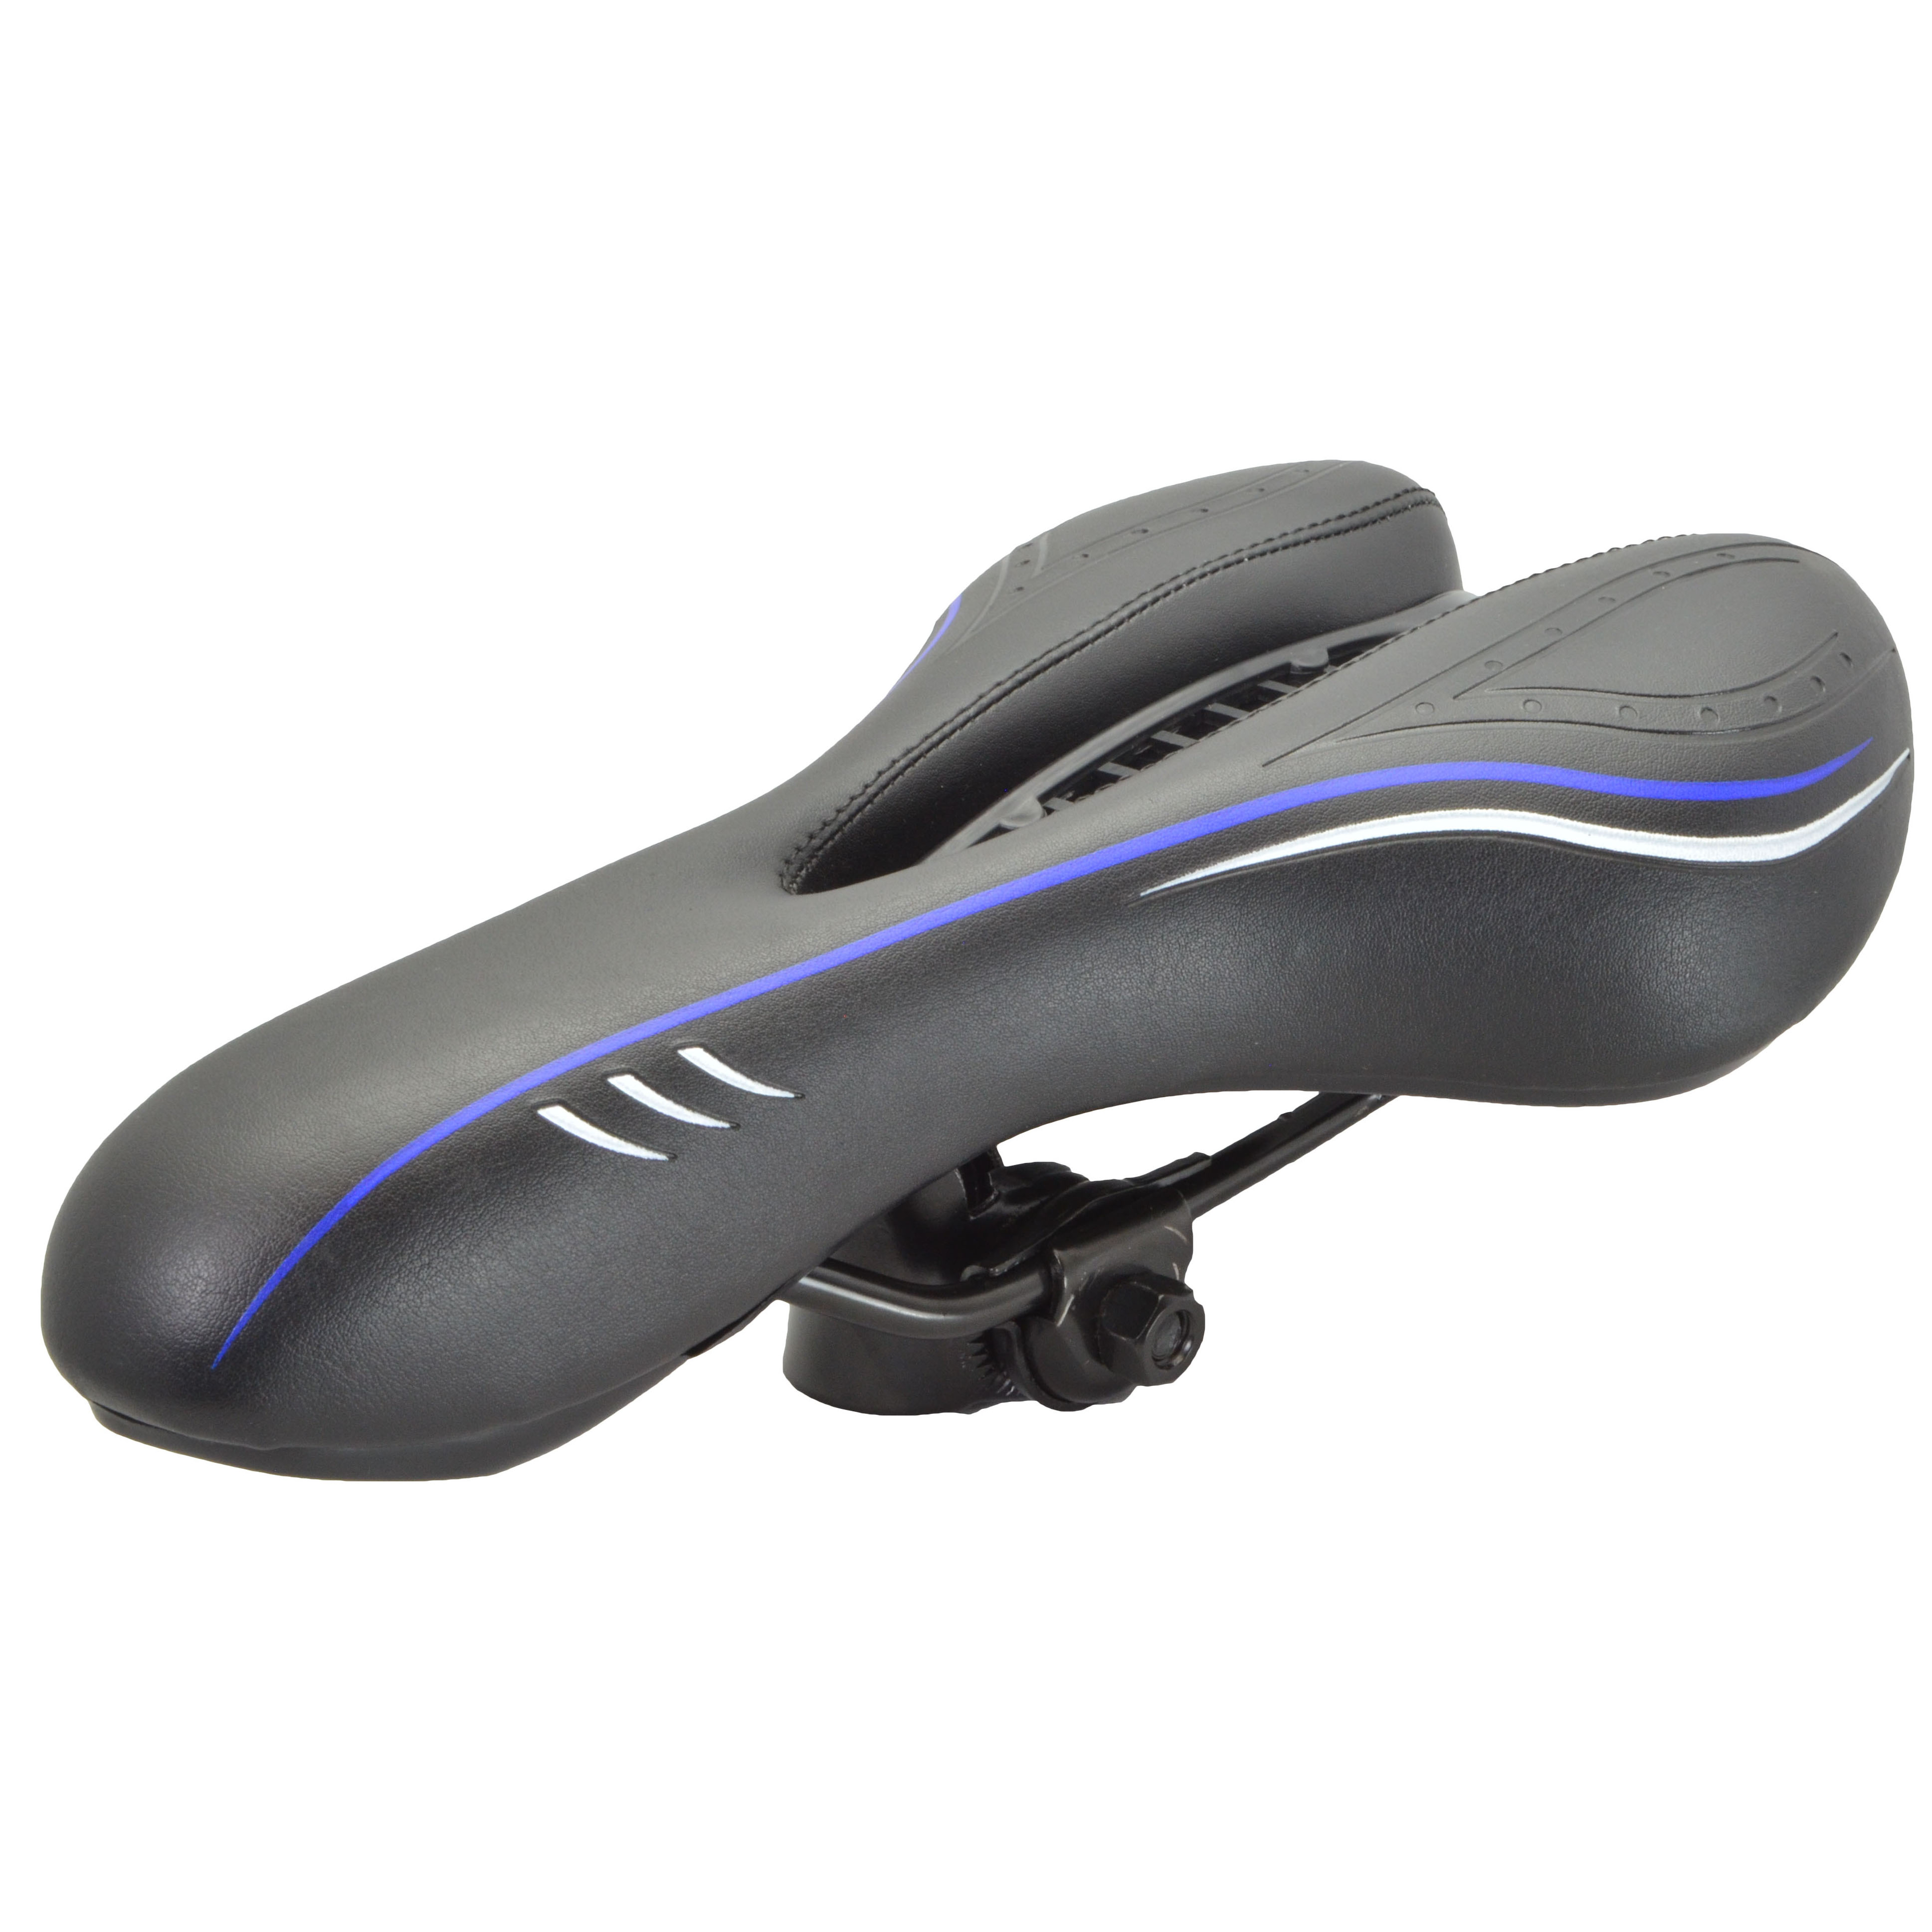 Lumintrail Comfort Vented Sport Bike Saddle Airflow Bicycle Seat with Built-in Protective Cover